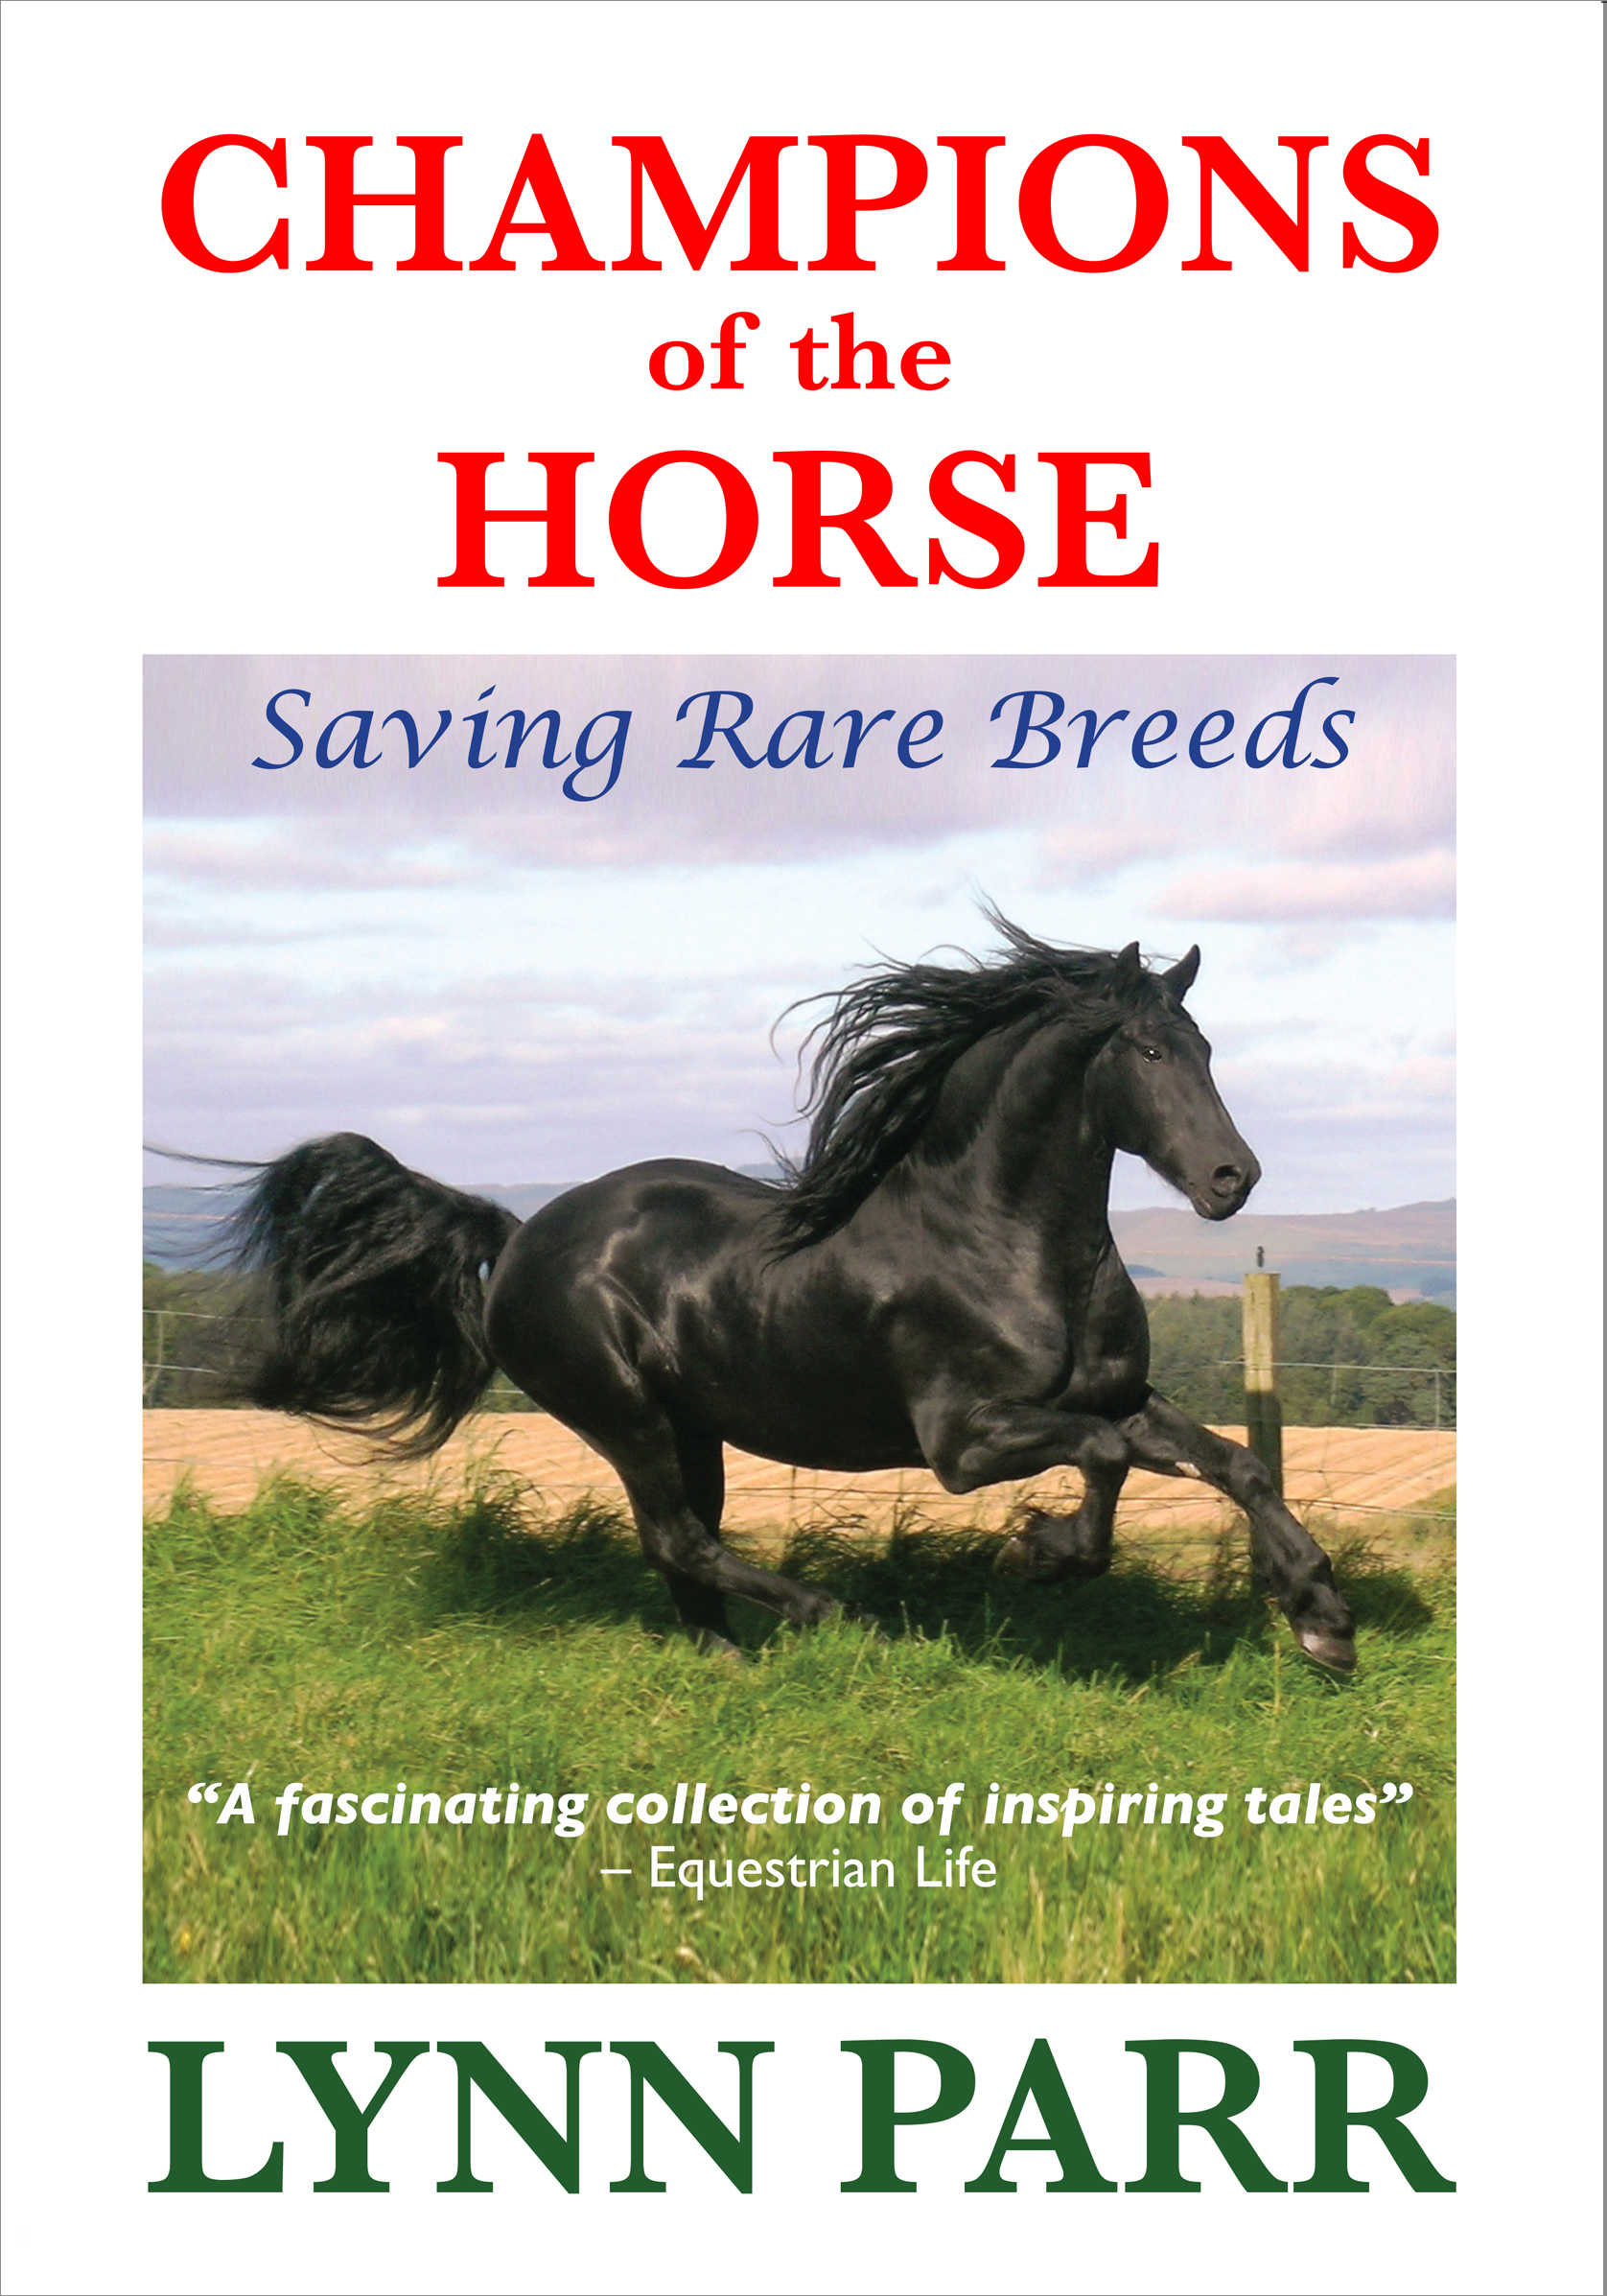 Champions of the Horse: Saving Rare Breeds